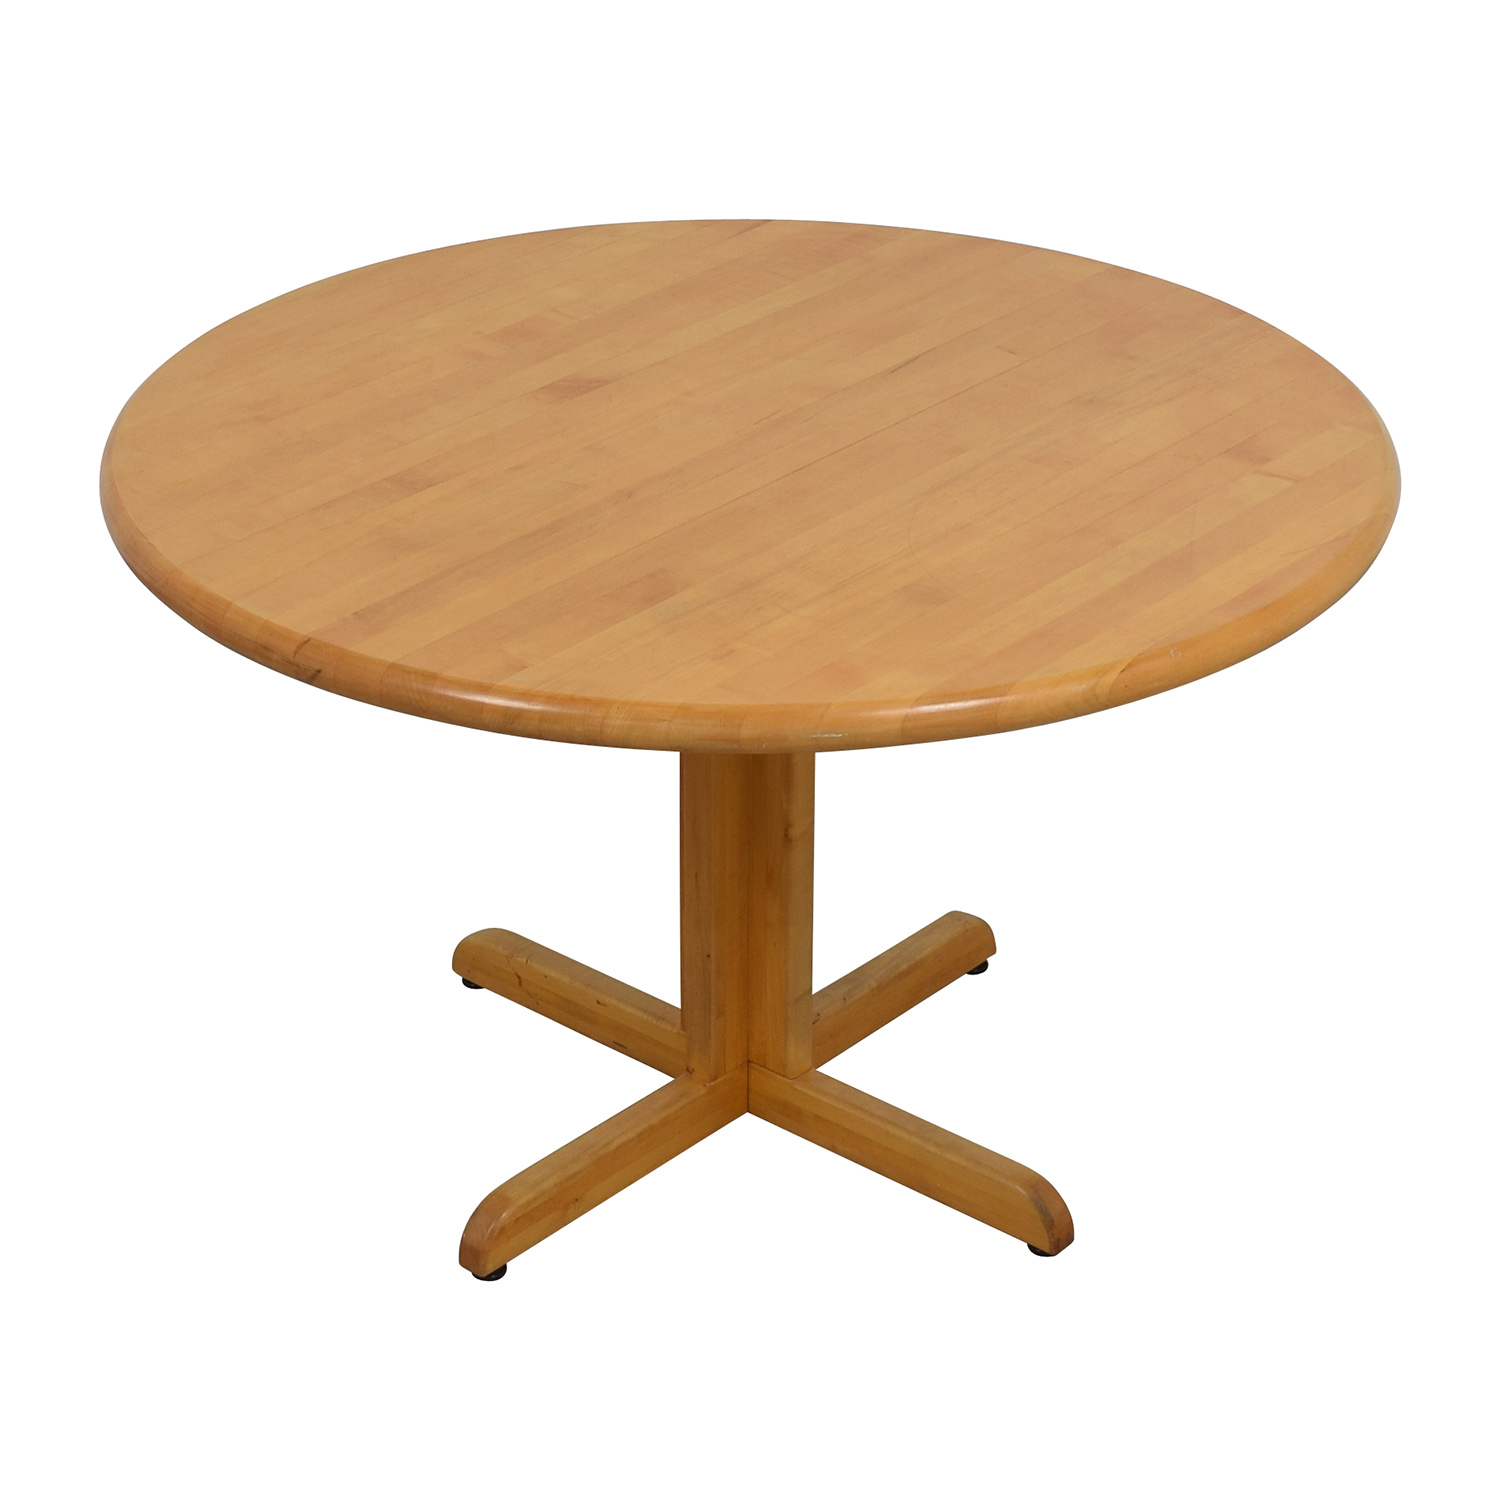 90 off solid wood round table tables for Circle table